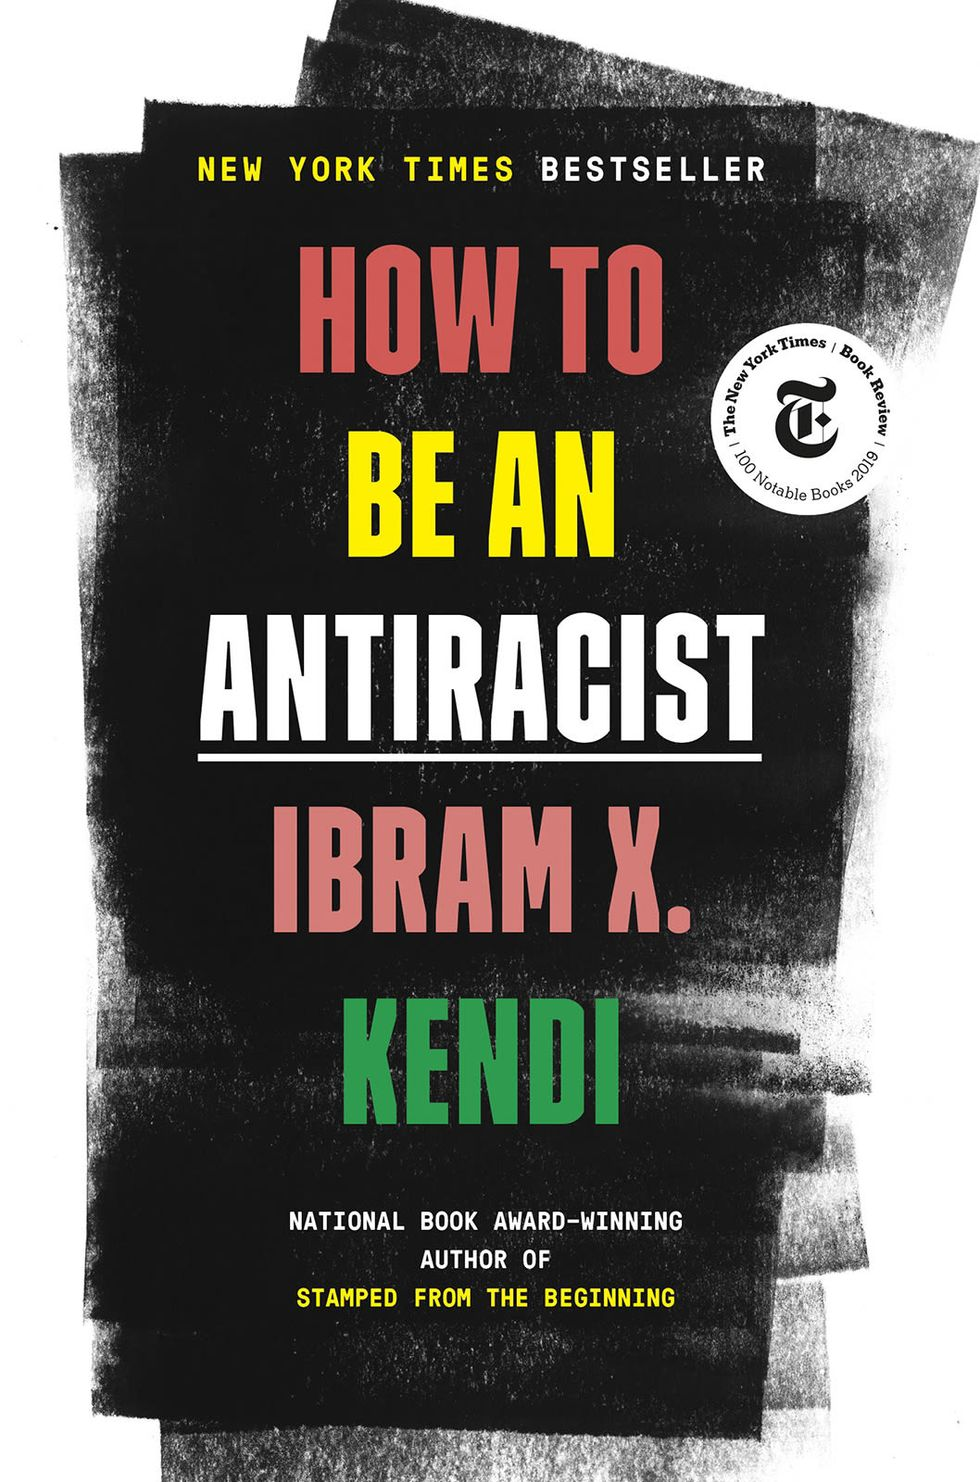 Ibram X. Kendi on the Atlanta spa shootings, the spread of racism and 'How to Be an Antiracist'